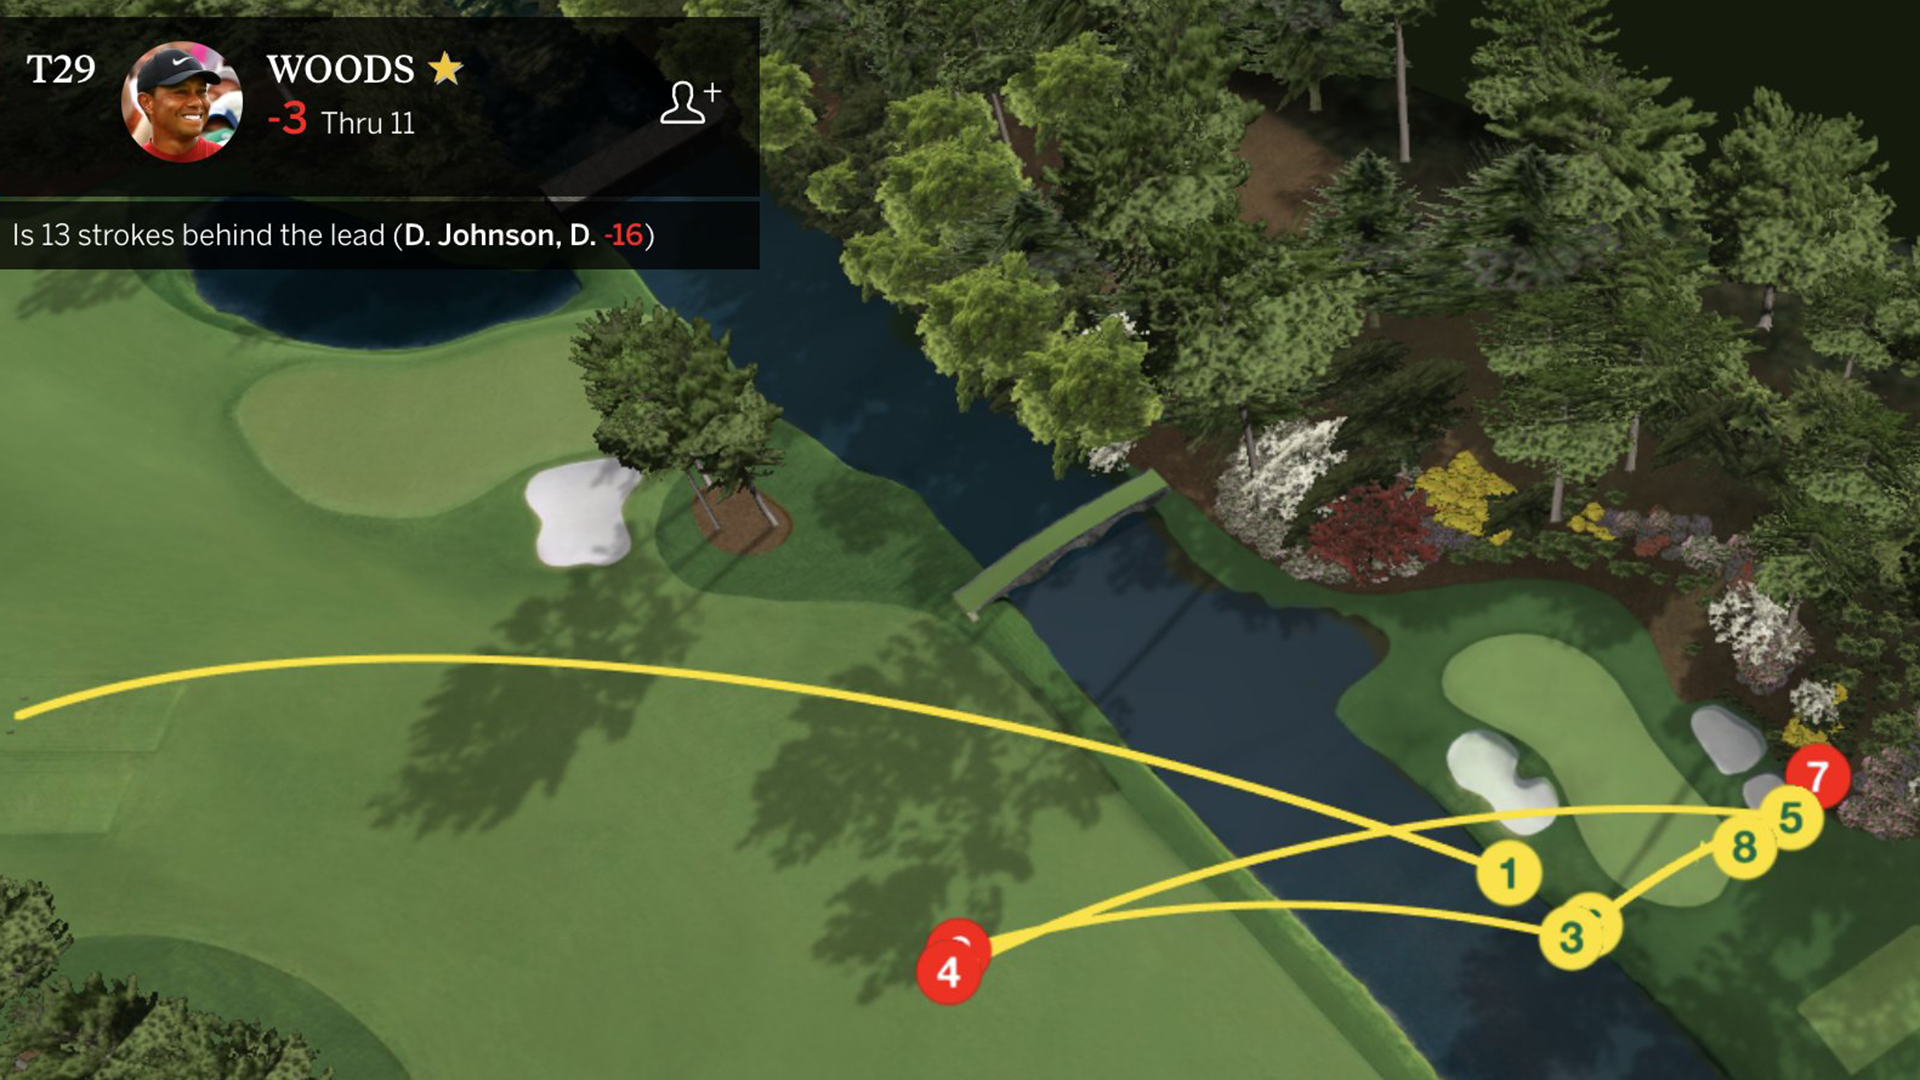 Tiger Woods implodes with 10 on a par 3 at the Masters, the first of his  PGA Tour career